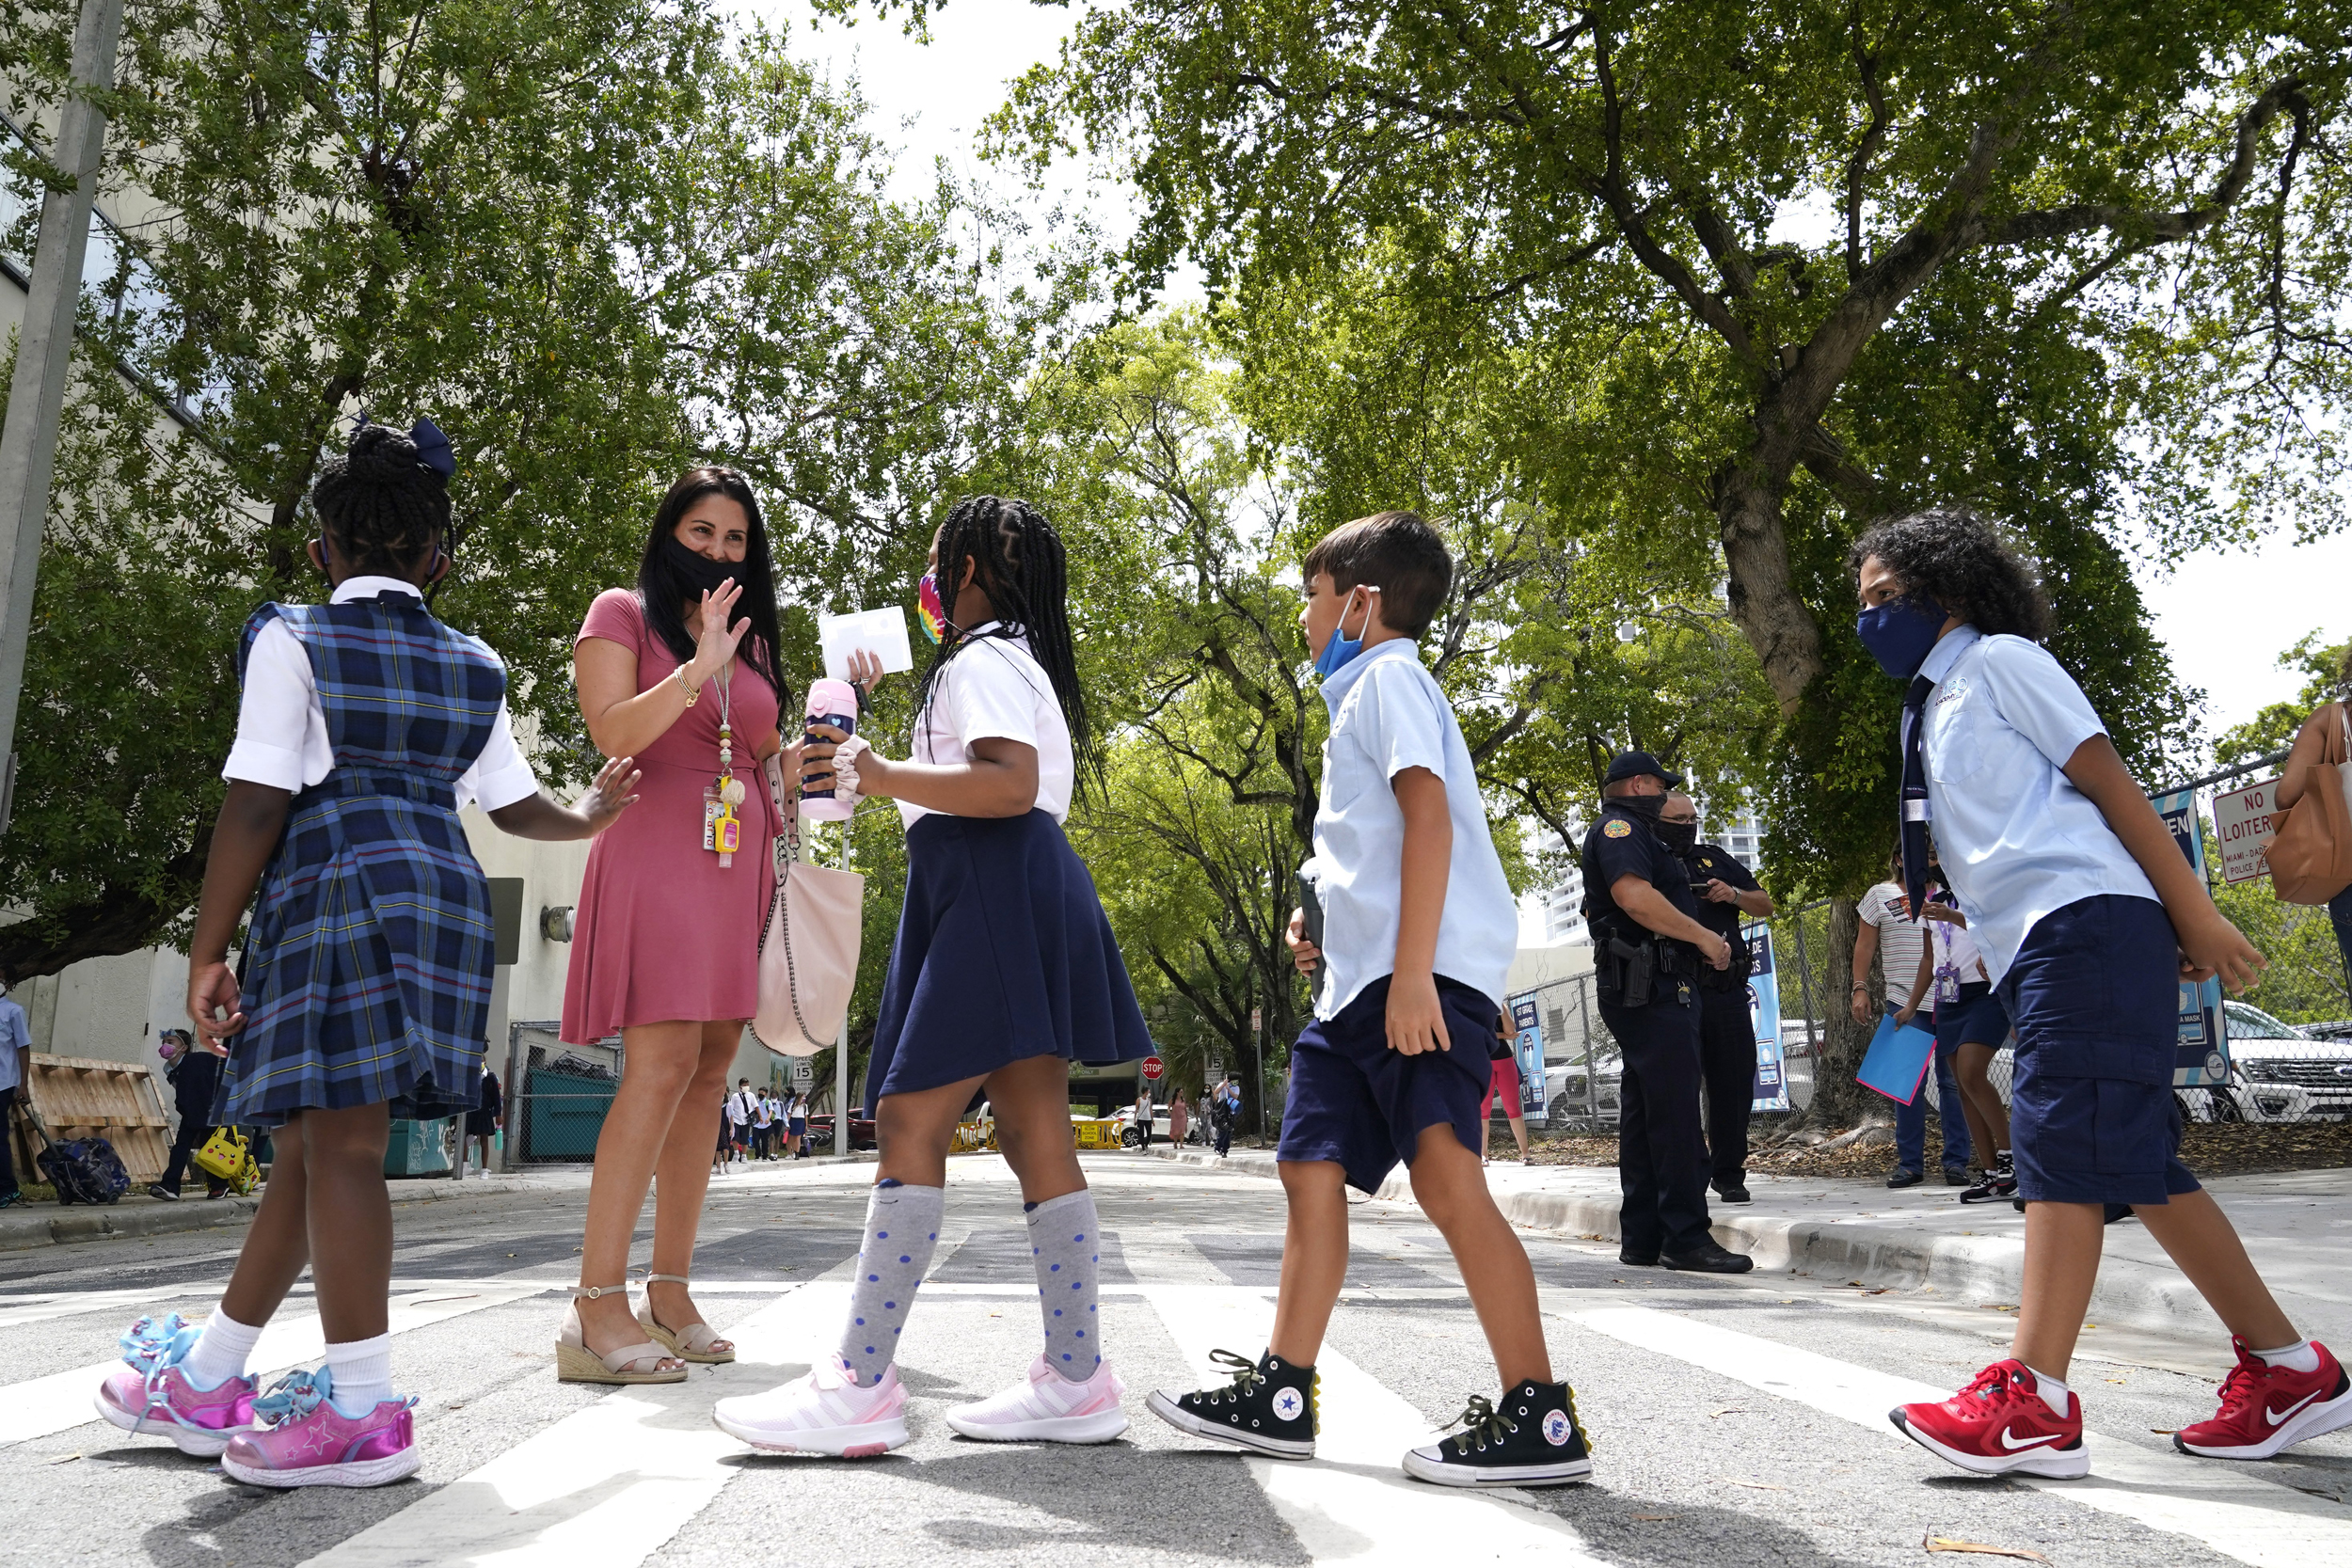 U.S. sends money to Florida school officials docked pay for defying mask mandate ban